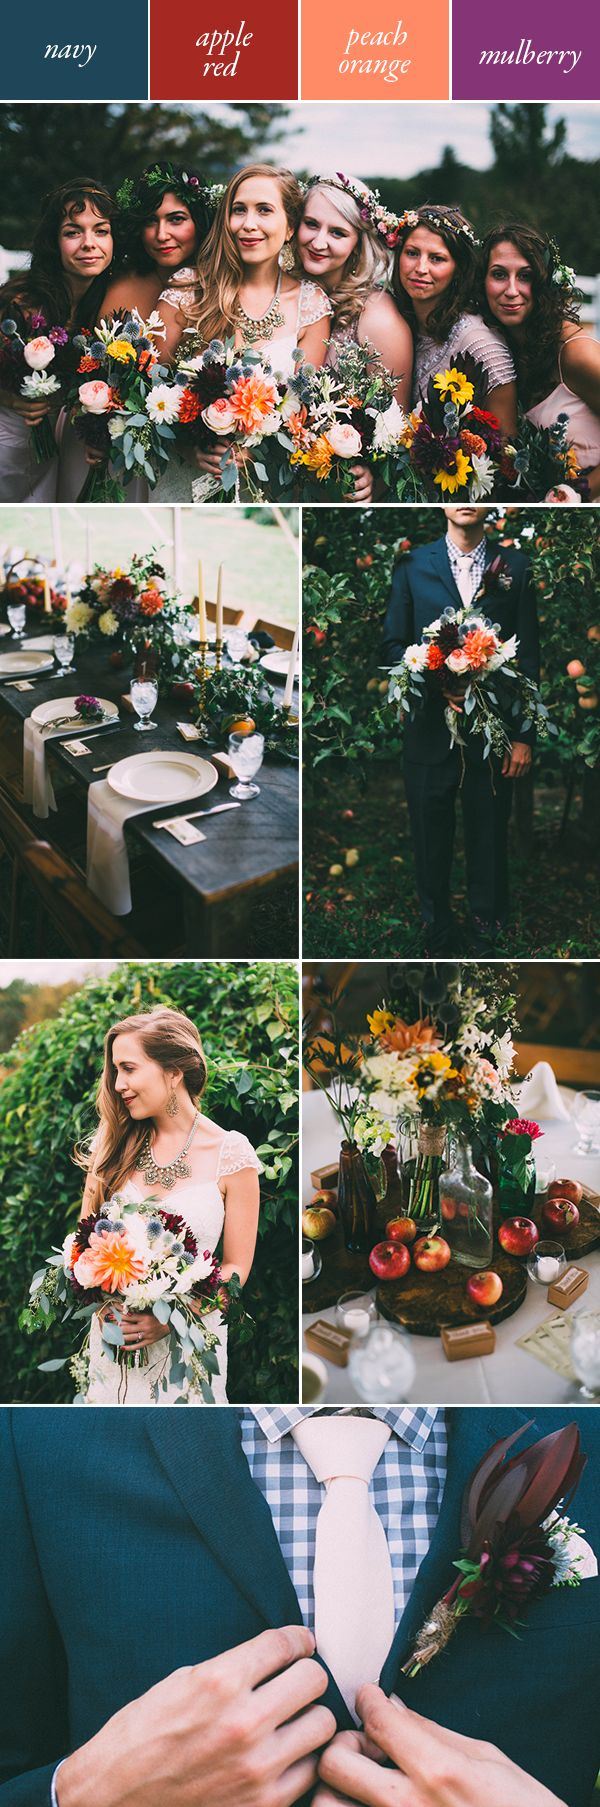 Looking for a vibrant, yet soulful color palette? A navy, red orange, and purple combination works wonders   Image by Chelsea Diane Photography